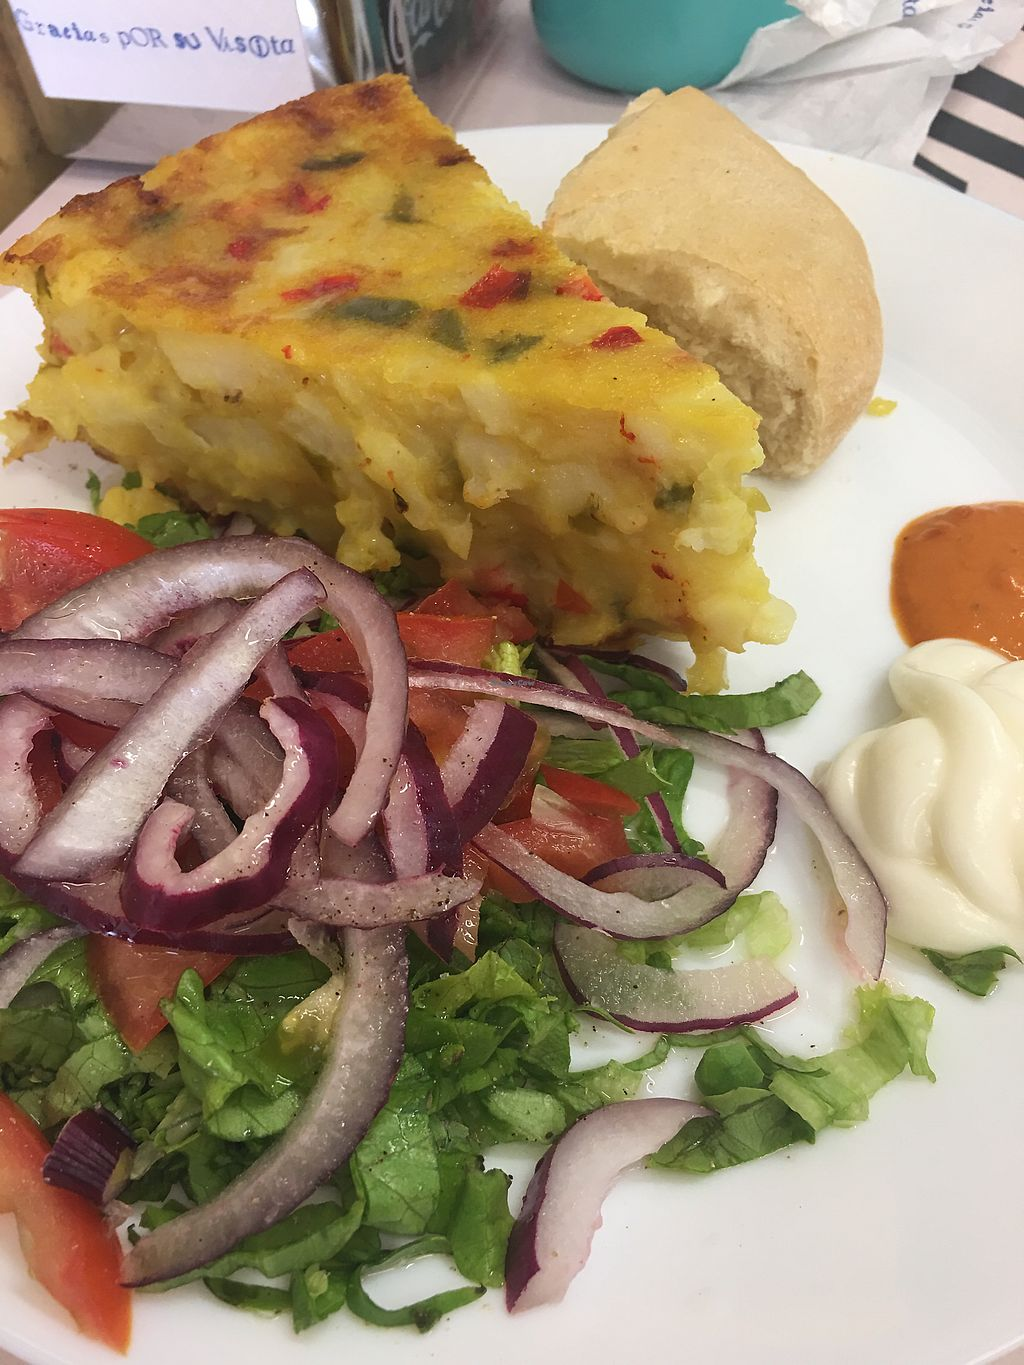 """Photo of K-Vegan  by <a href=""""/members/profile/kiiabby"""">kiiabby</a> <br/>Tortilla  <br/> March 27, 2018  - <a href='/contact/abuse/image/52654/376803'>Report</a>"""